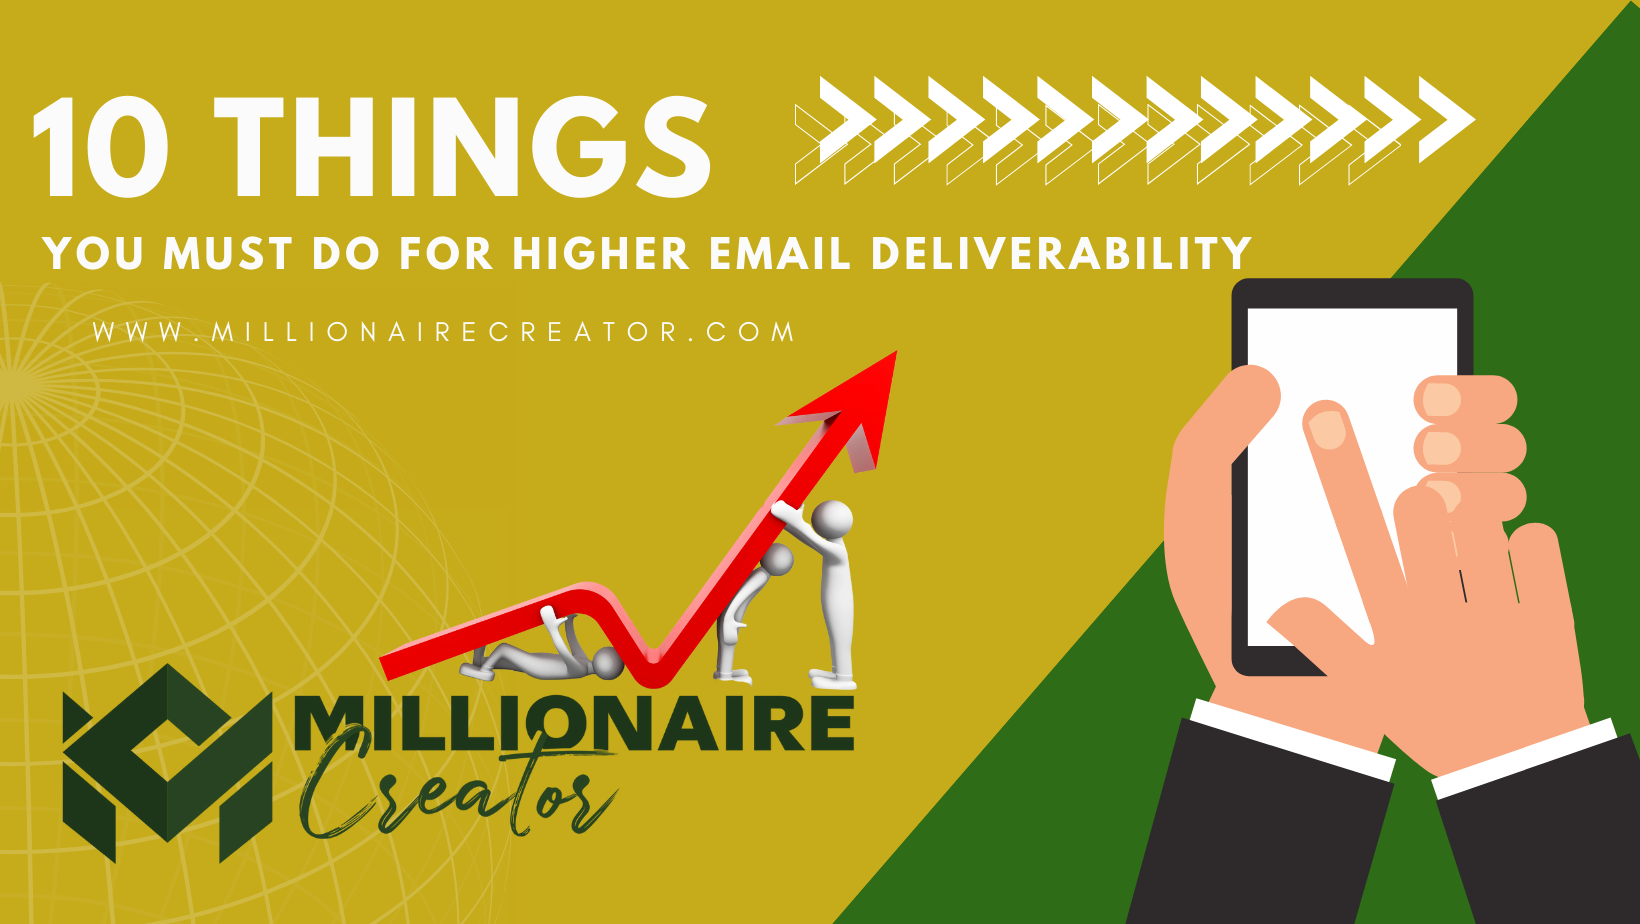 increasing email deliverability by Colin Wayne, Millionaire Creator